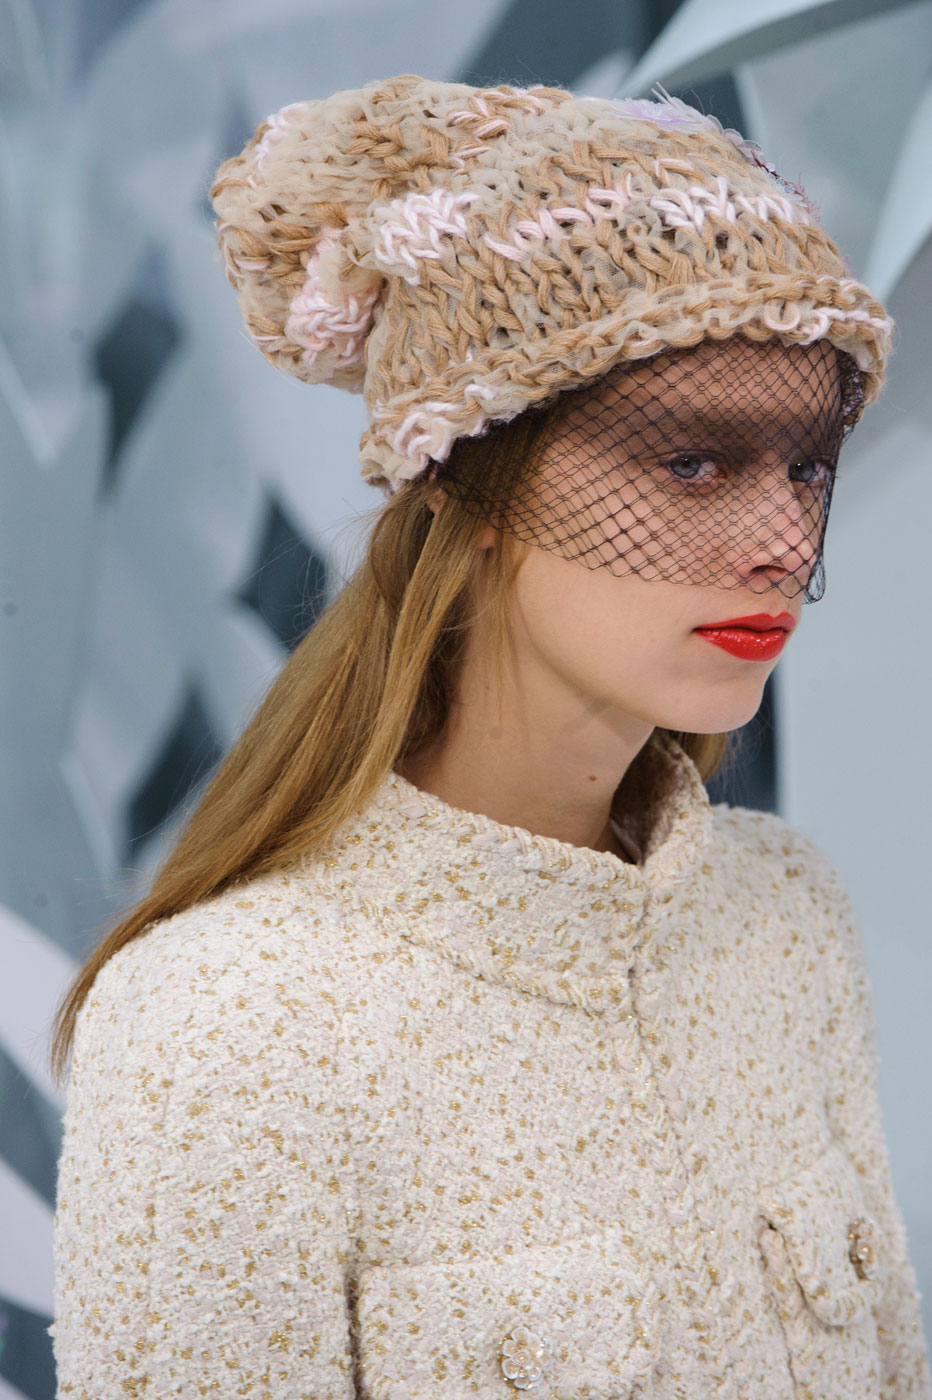 Chanel-fashion-runway-show-close-ups-haute-couture-paris-spring-summer-2015-the-impression-035